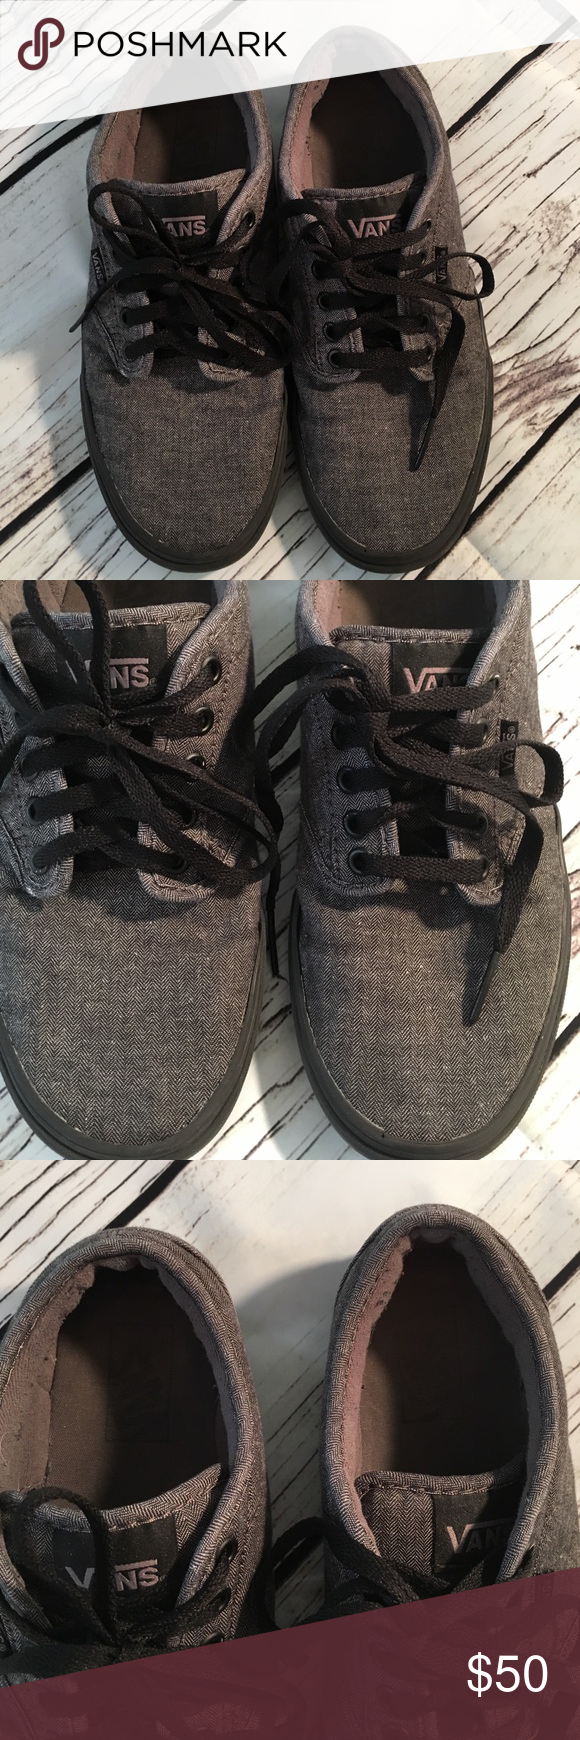 e83869fdd6 No signs of wear except inside shoe. You can still read the labels. No wear  on heels or soles that I can see. Size 8.5 US. Euro 39 Vans Shoes Athletic  Shoes